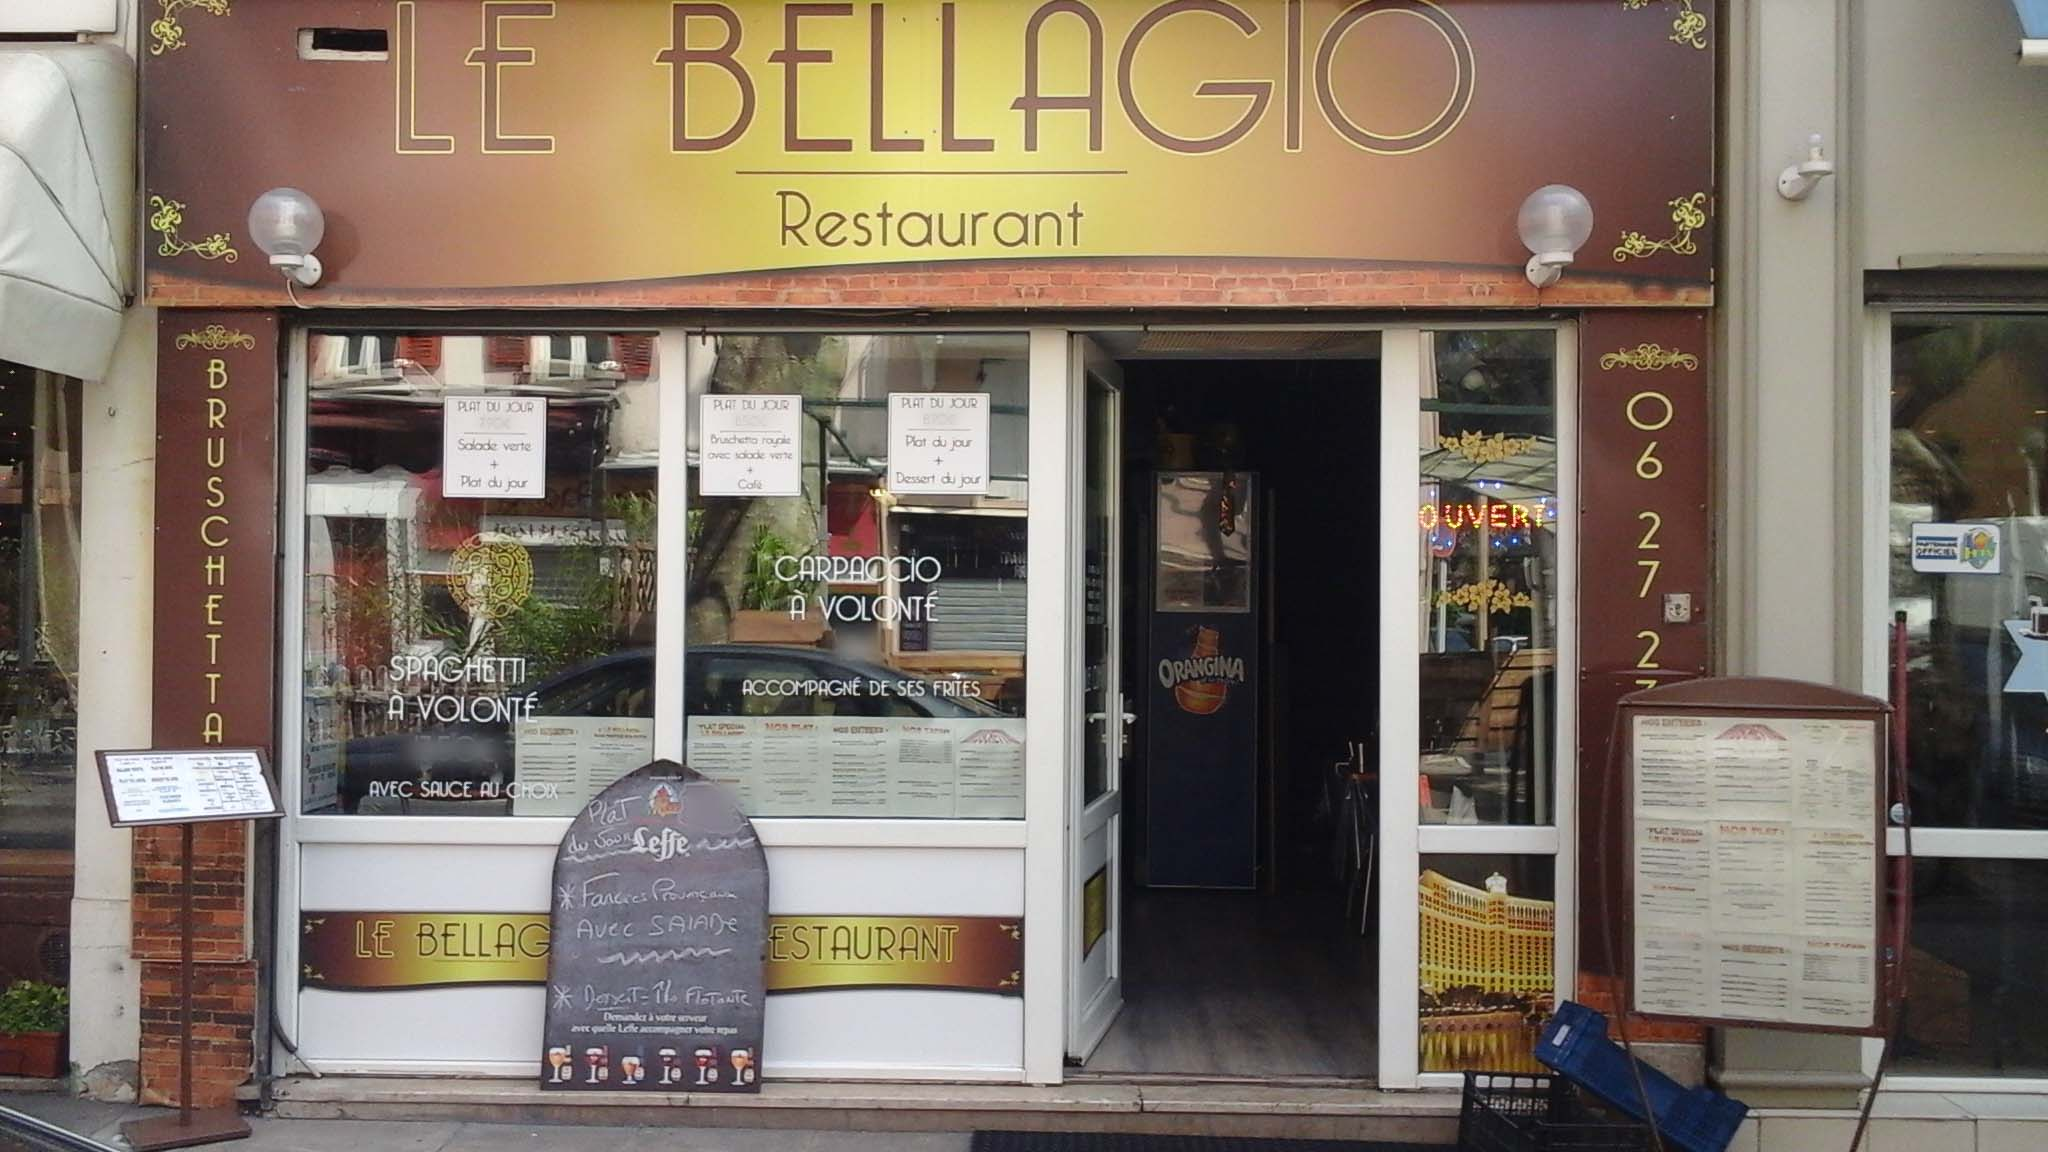 Restaurant Le Bellagio